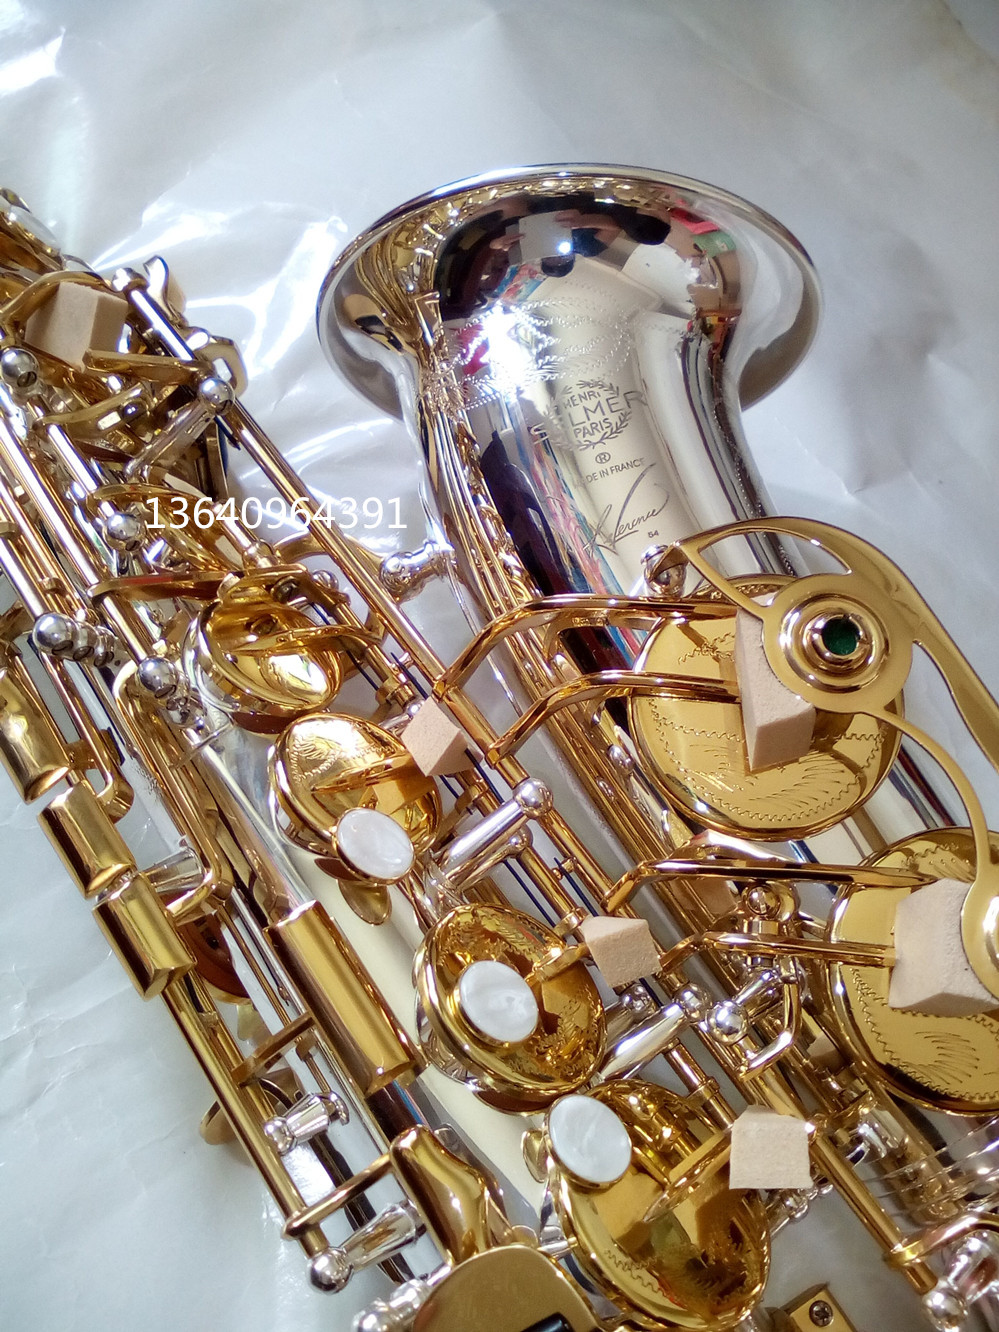 France Henri profession Selmer High-Pitch E Alto Saxophone  Super Action 54 Series II Silver Gold key Plating Surface Saxofone alto saxophone selmer 54 brass silver gold key e flat musical instruments saxophone with cleaning brush cloth gloves cork strap